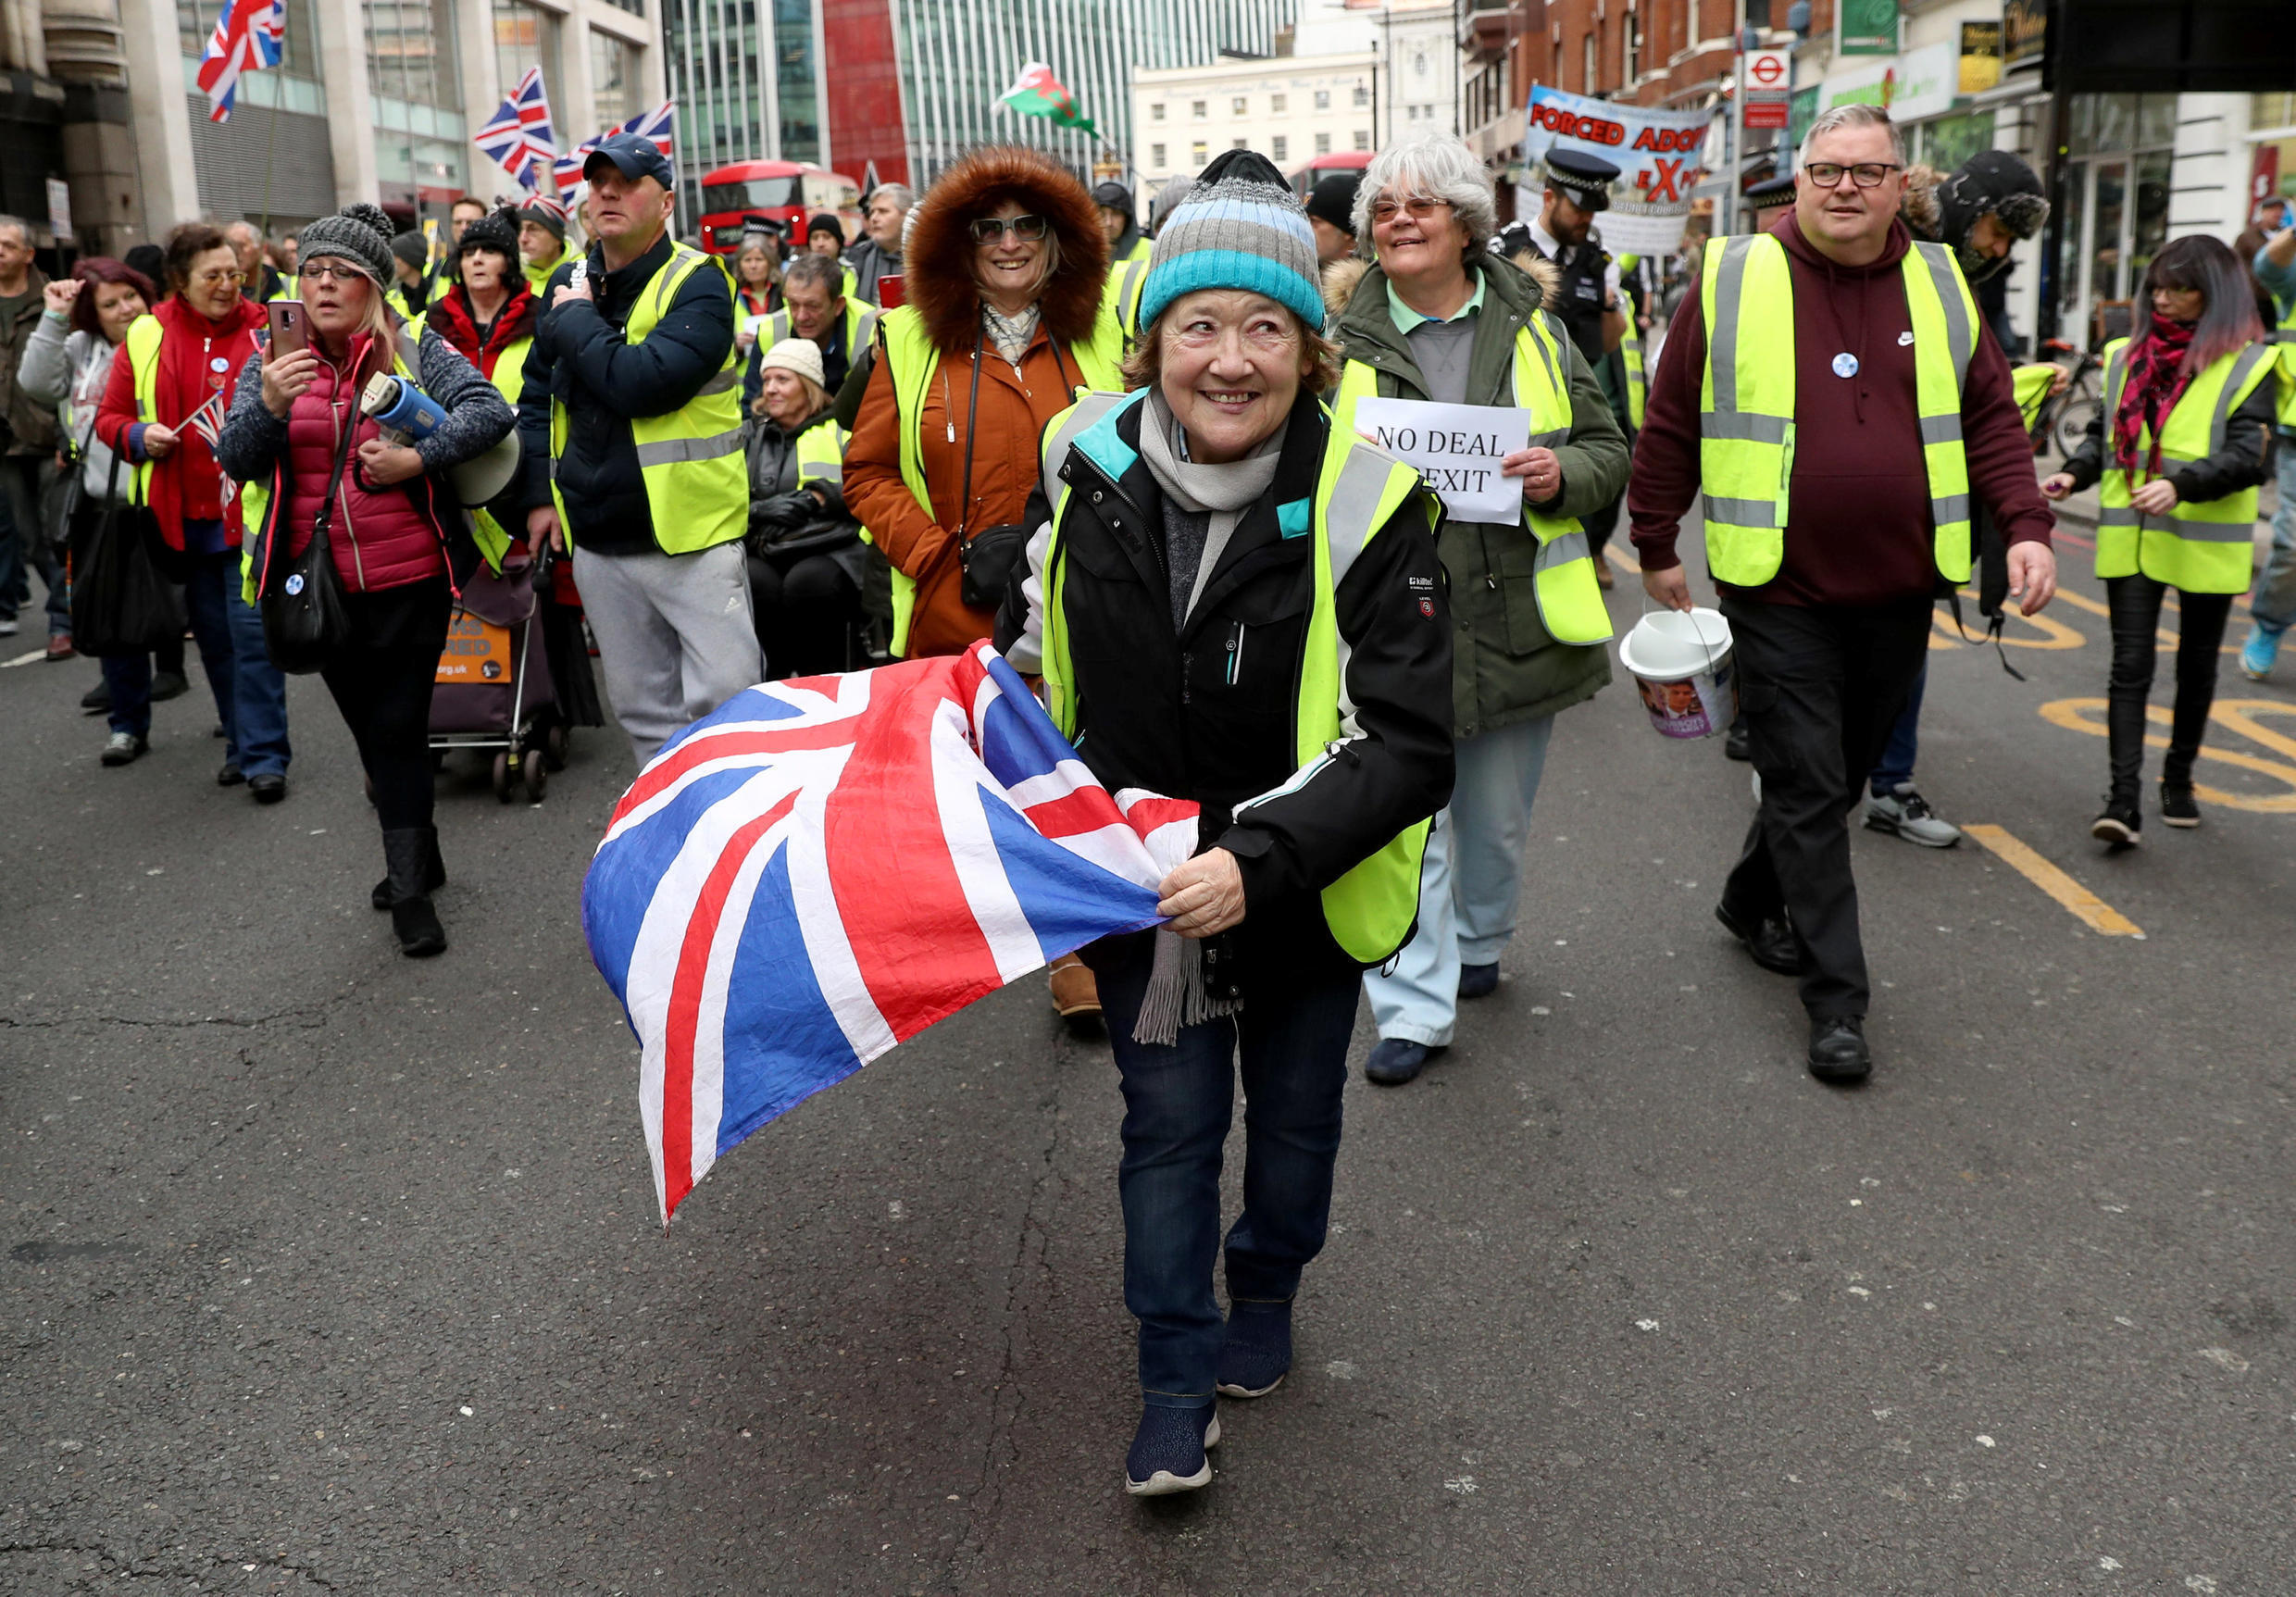 Protesters wearing yellow vests participate in pro-Brexit demonstration march in central London, Britain January 12, 2019.